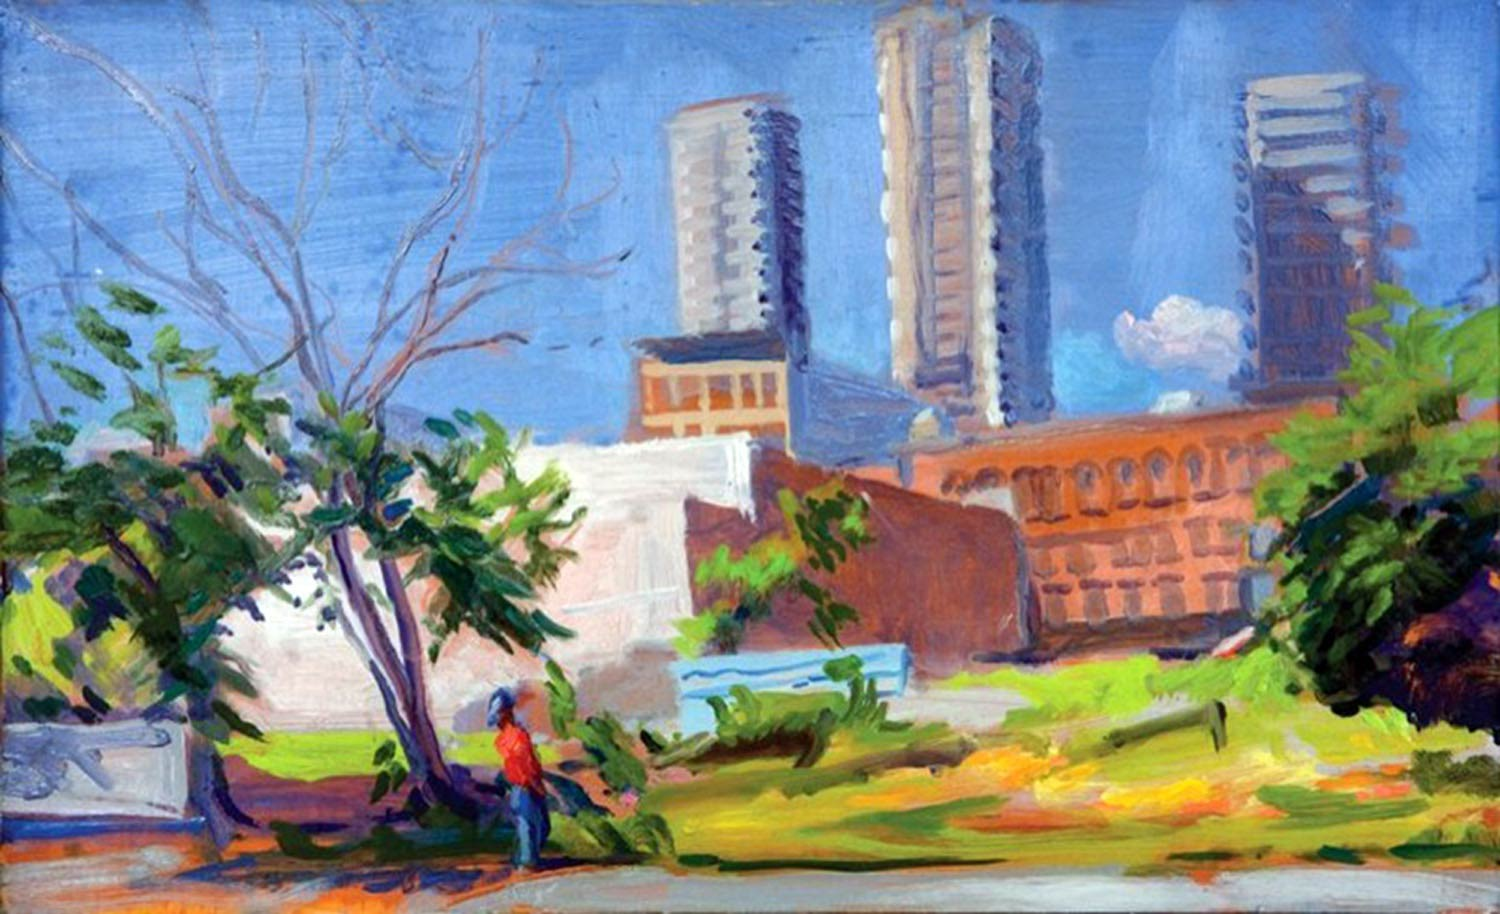 TainoTowers 12 x 16 in. oil on wood 2004